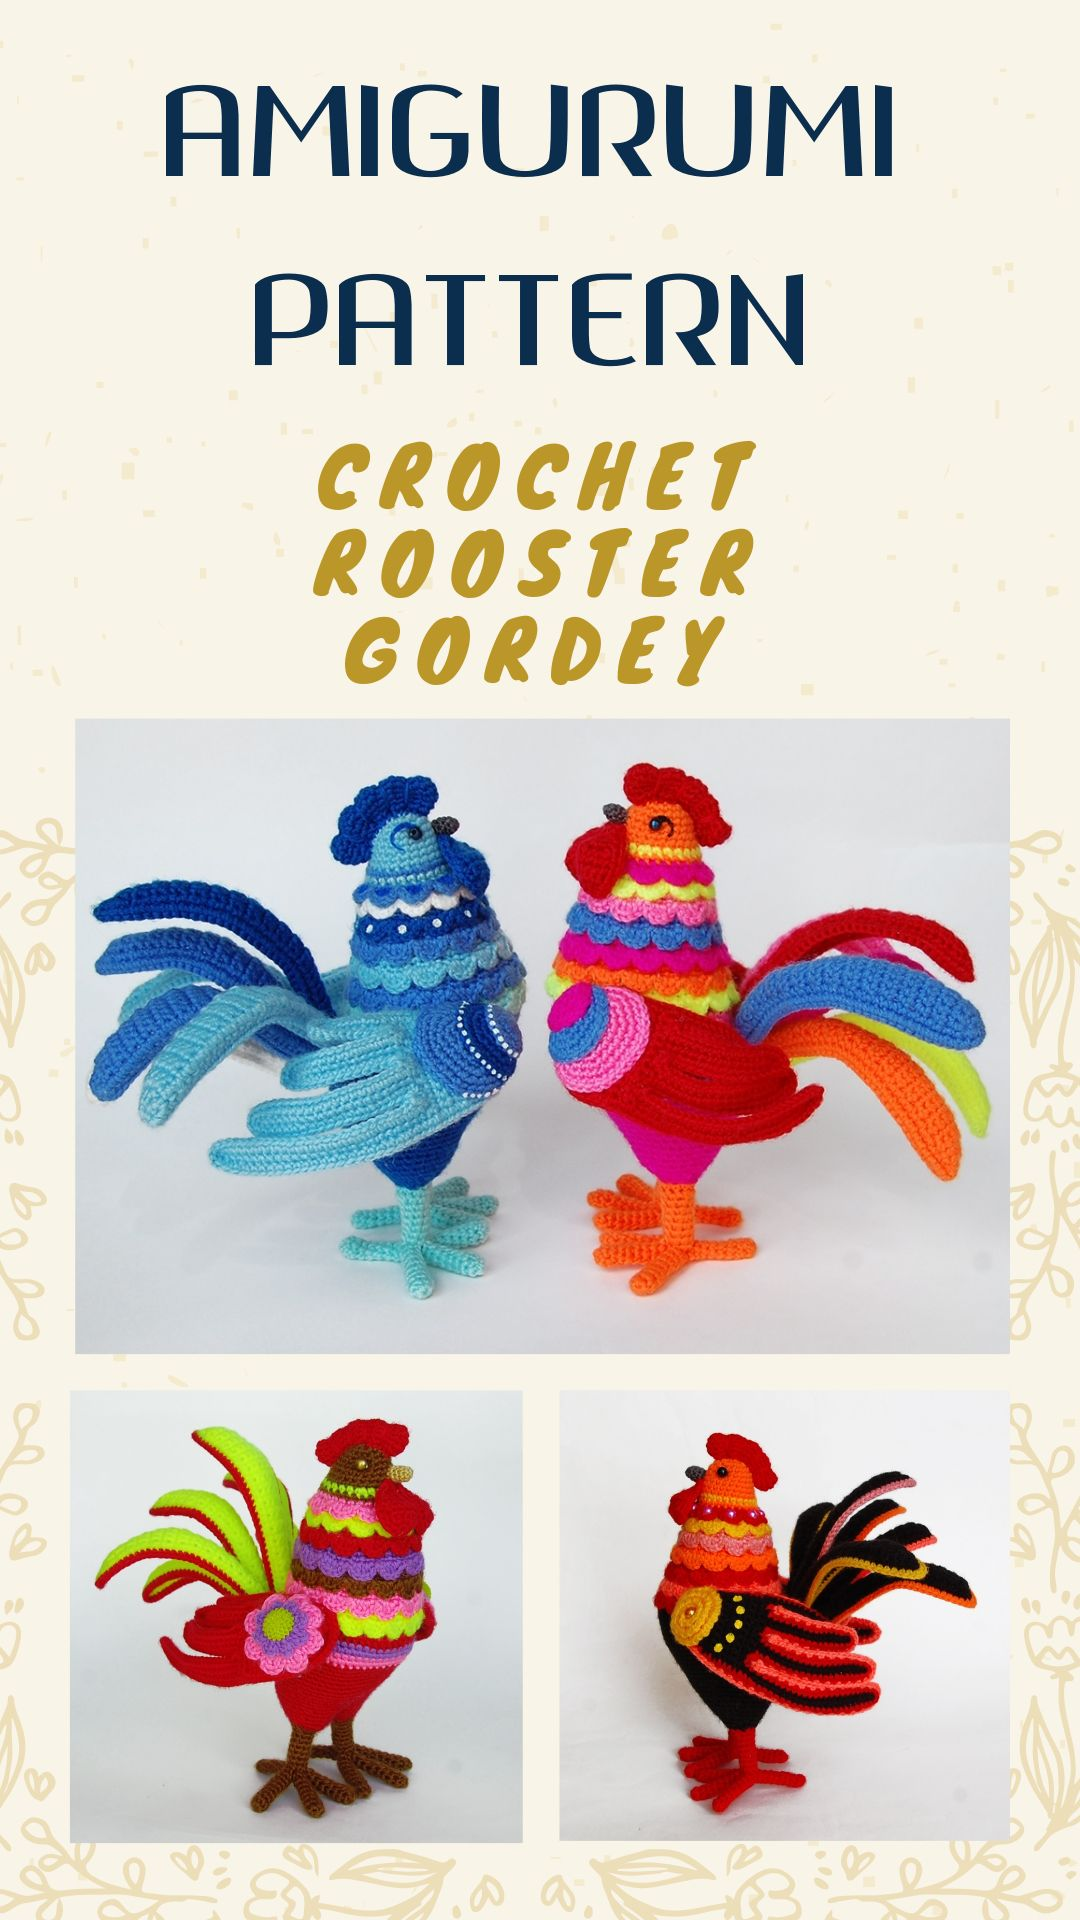 Amigurumi Easter Rooster Crochet Free Patterns • Page 2 of 2 • DIY ... | 1920x1080